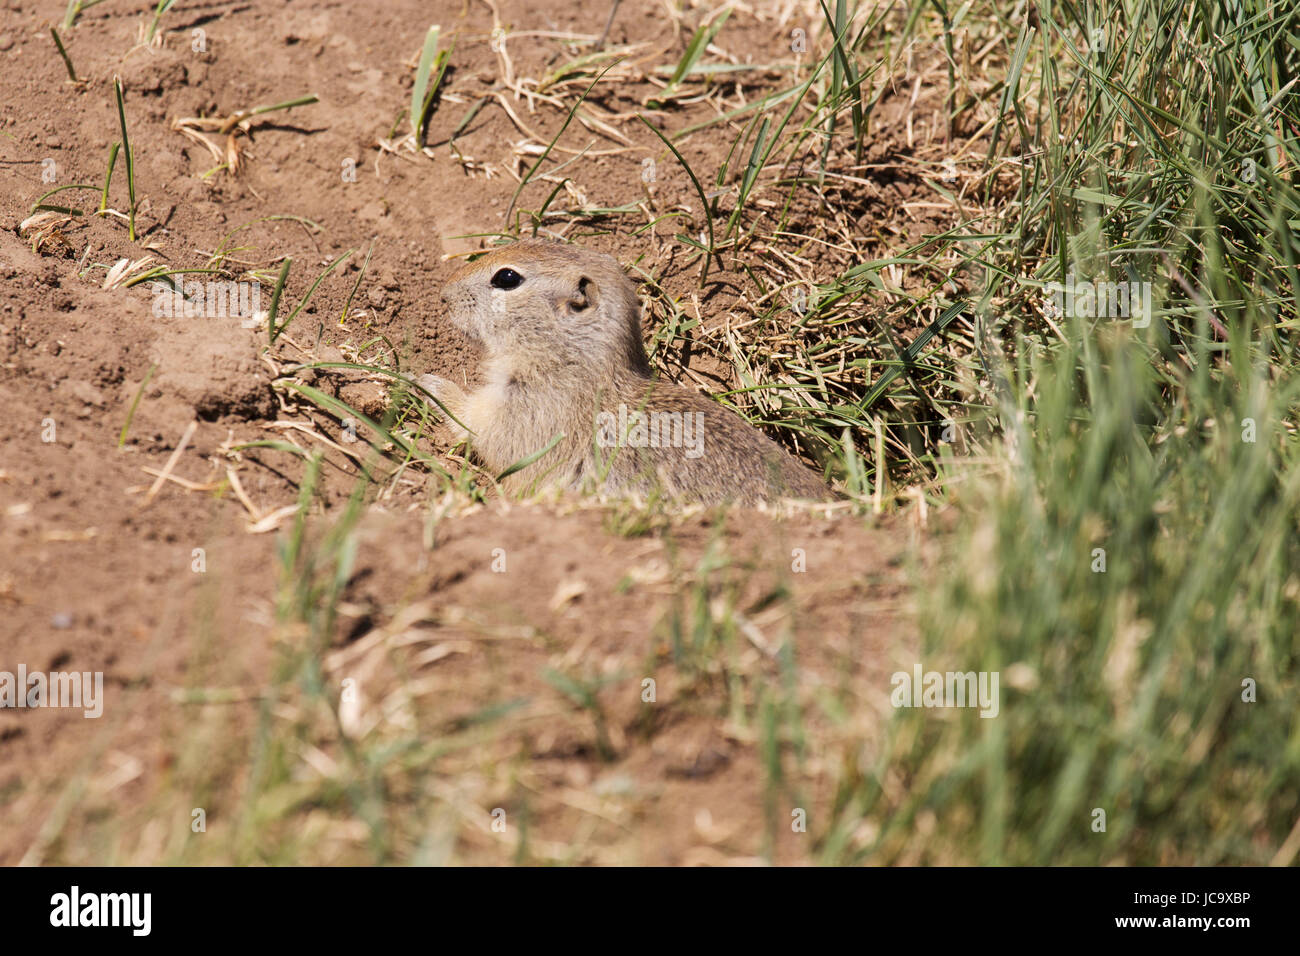 The Gopher Stock Photos & The Gopher Stock Images - Alamy